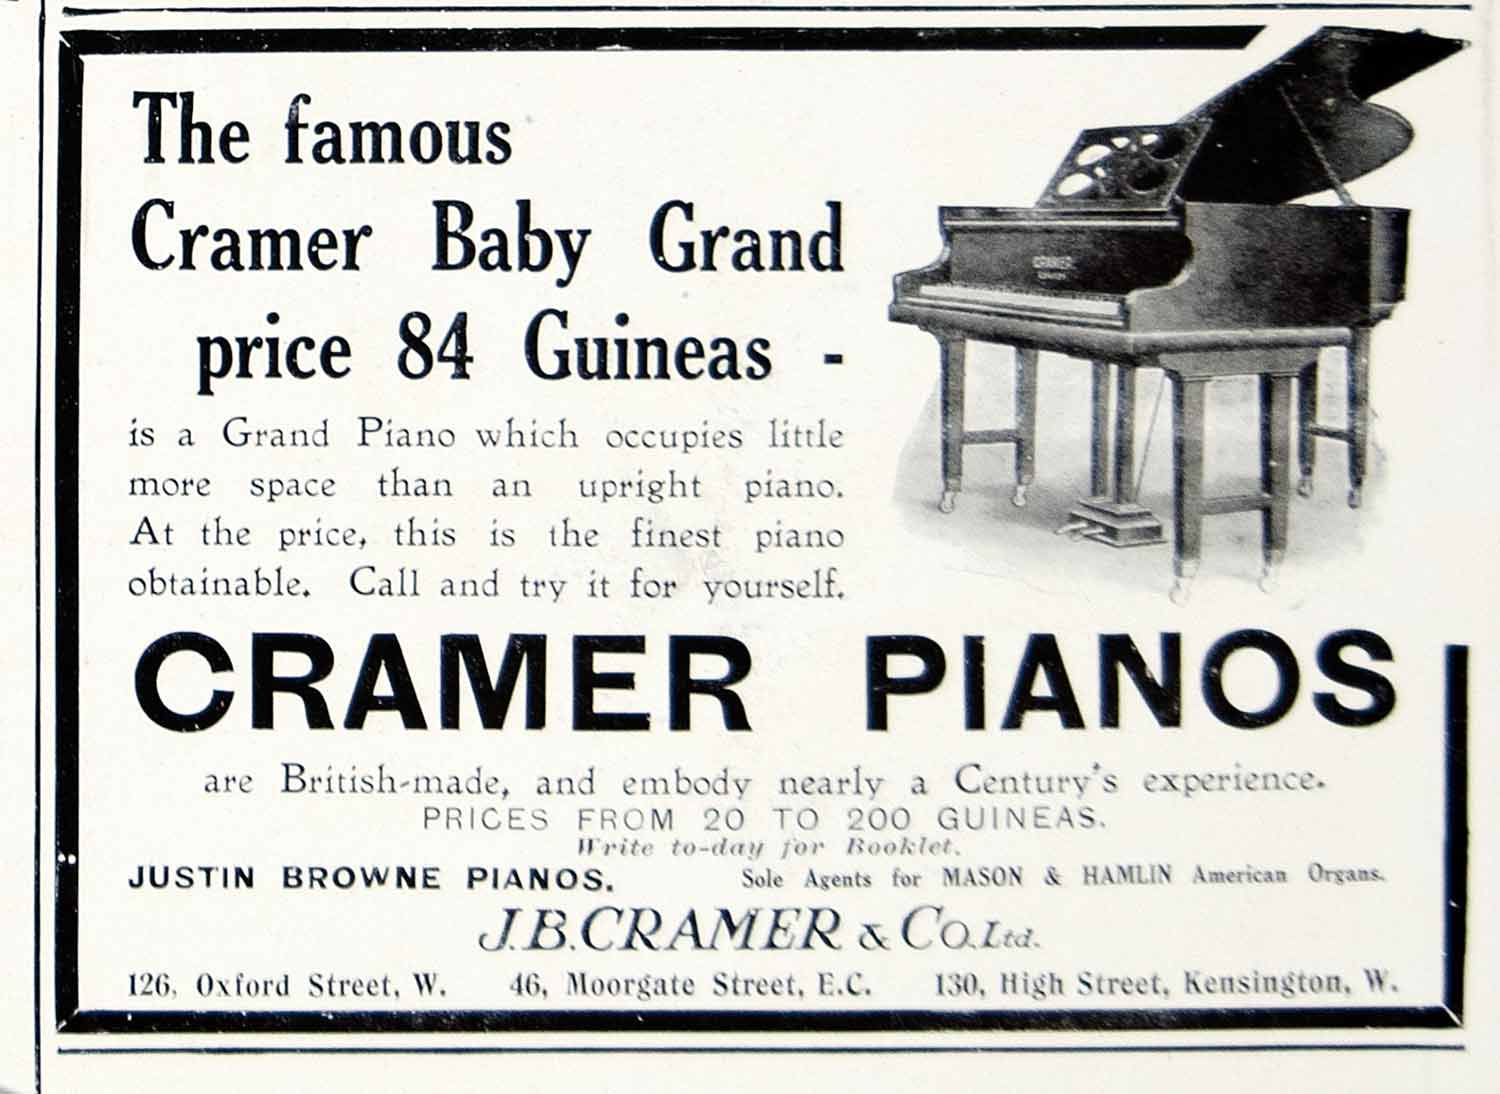 1911 Ad Justin Browne Cramer Baby Grand Pianos Musical Instruments London ILN2